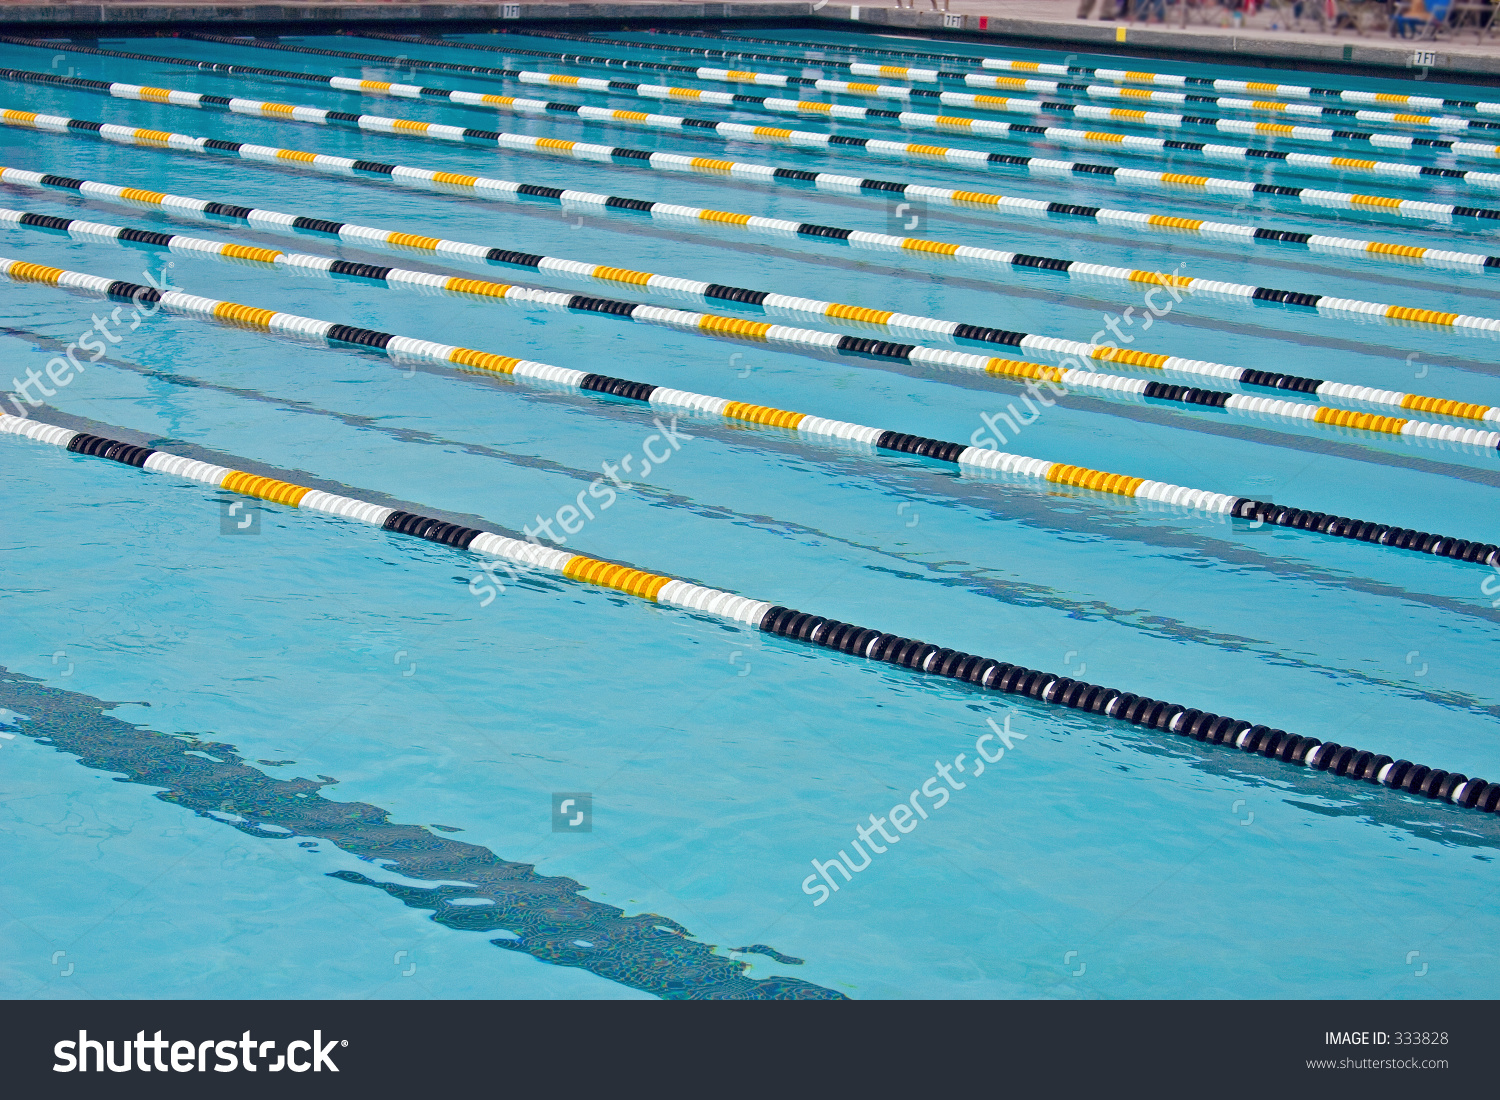 An Olympic Size Swimming Pool For Competition Stock Photo 333828.